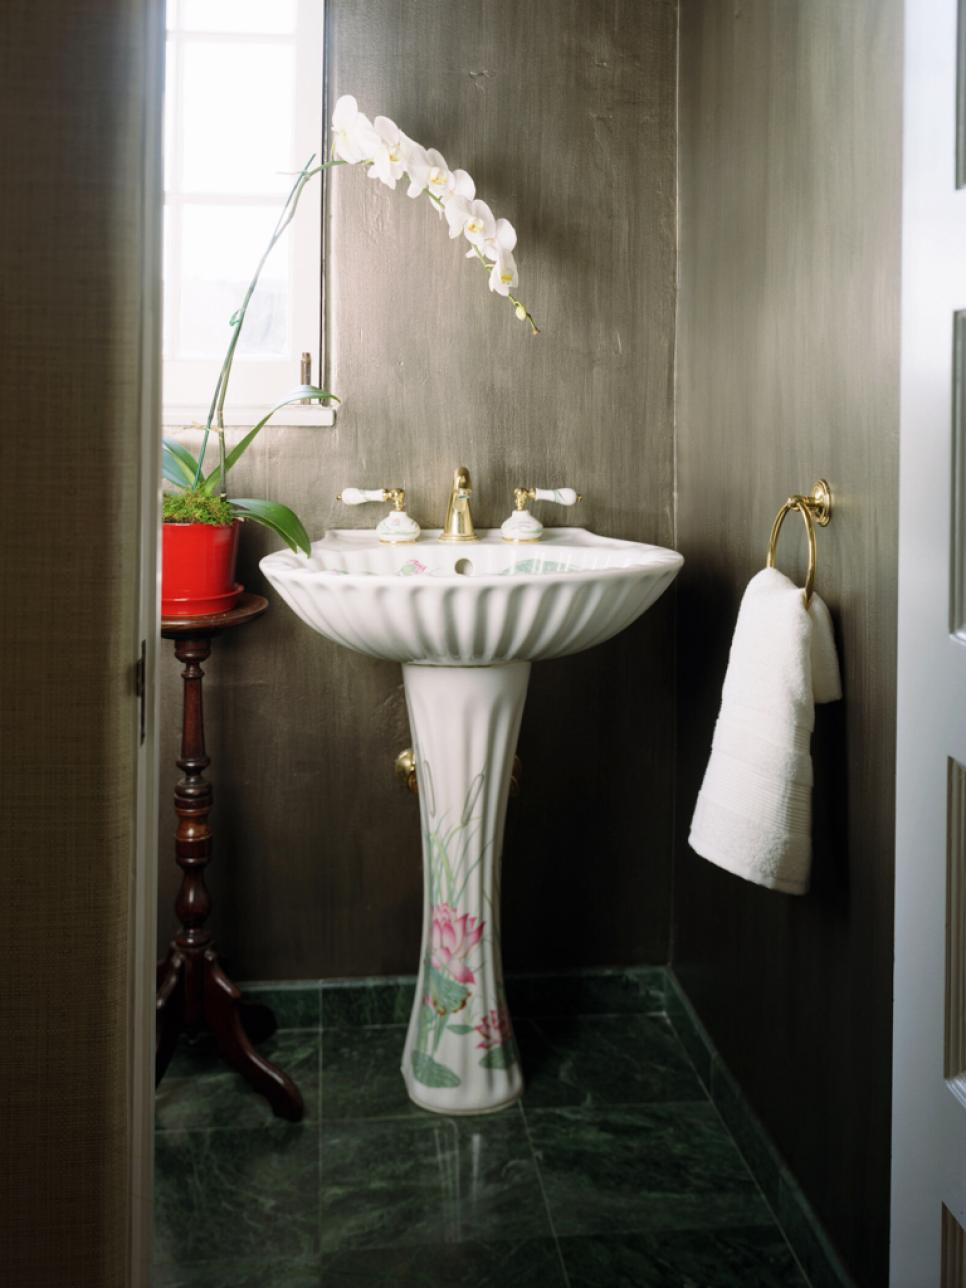 Powder Room Designs DIY - Small bath redo for small bathroom ideas